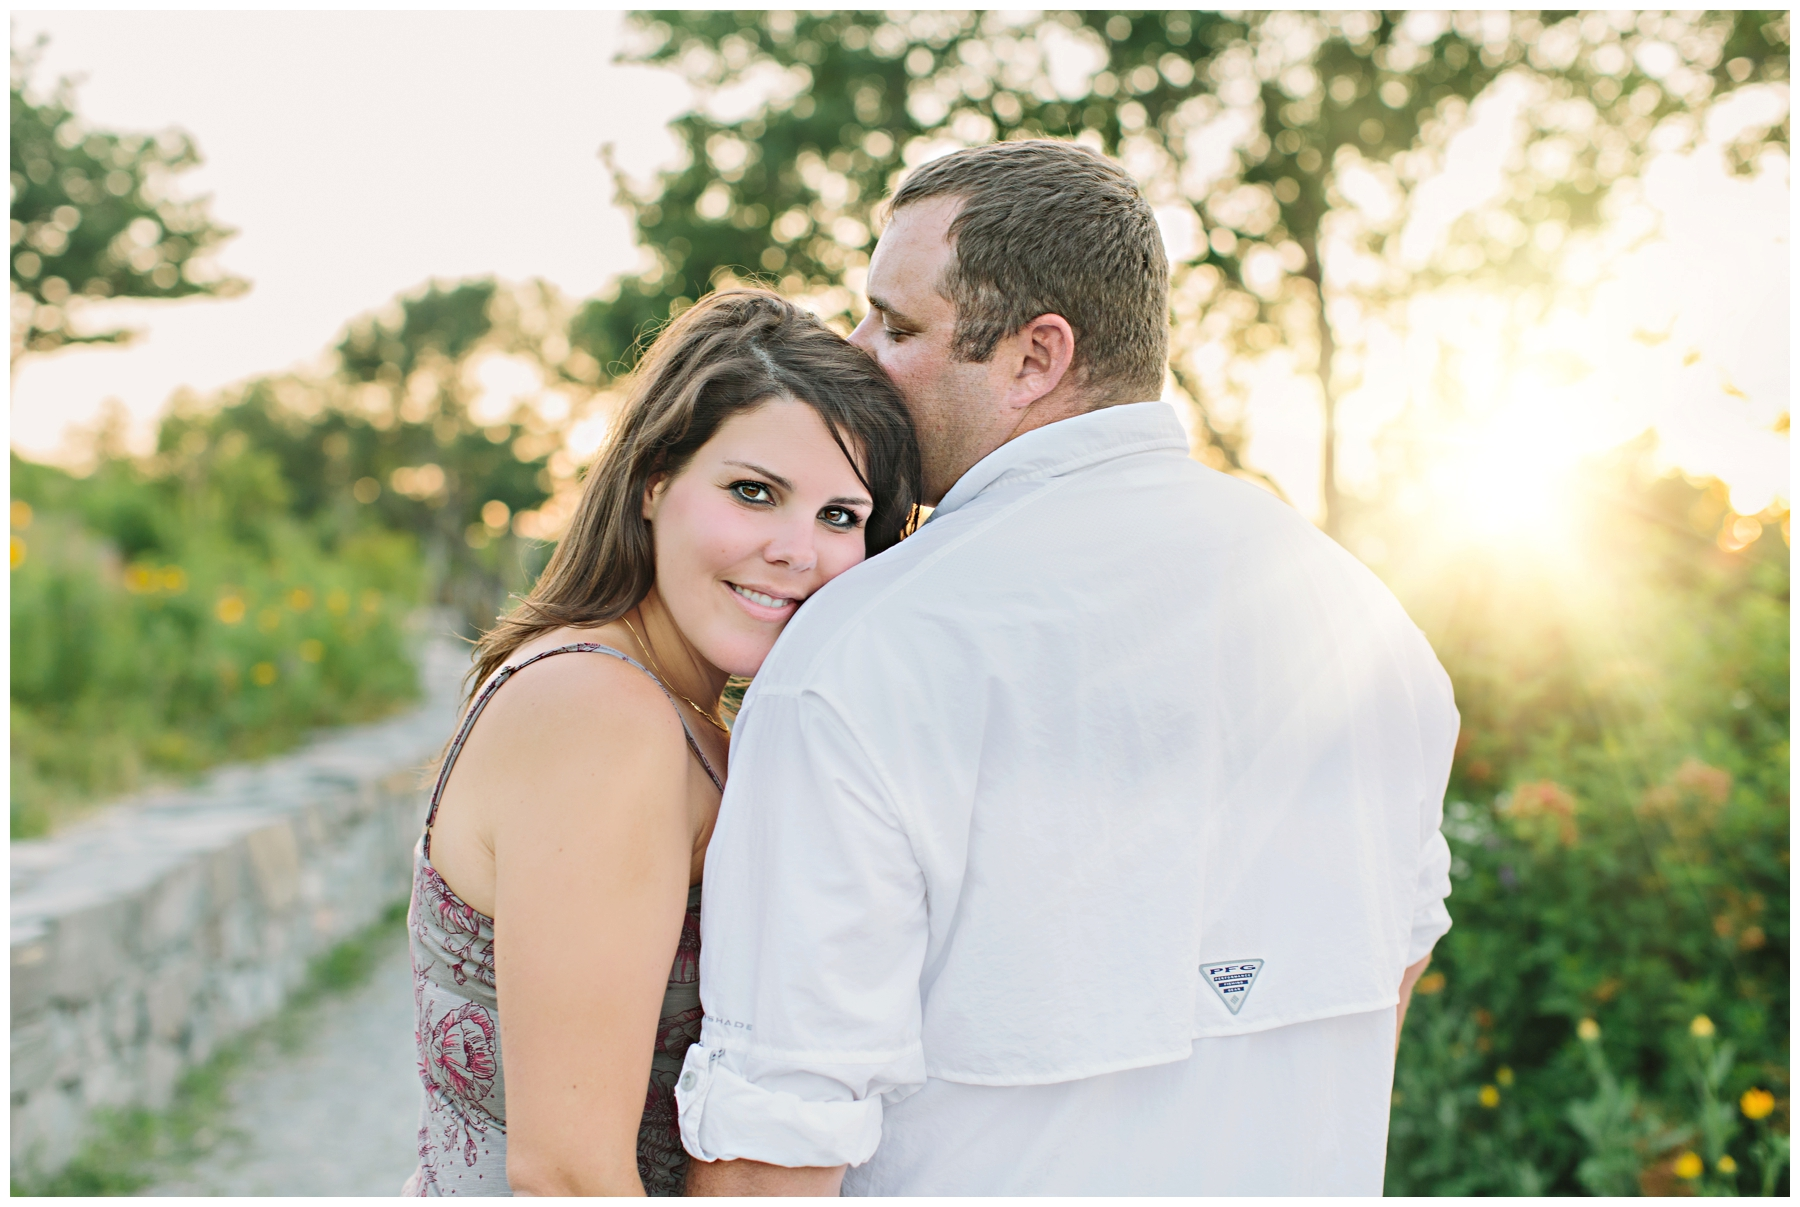 Maine_Photographer_Engagements_FortWilliams_PortlandHeadLight_lighthouse_coastal_seaside-017